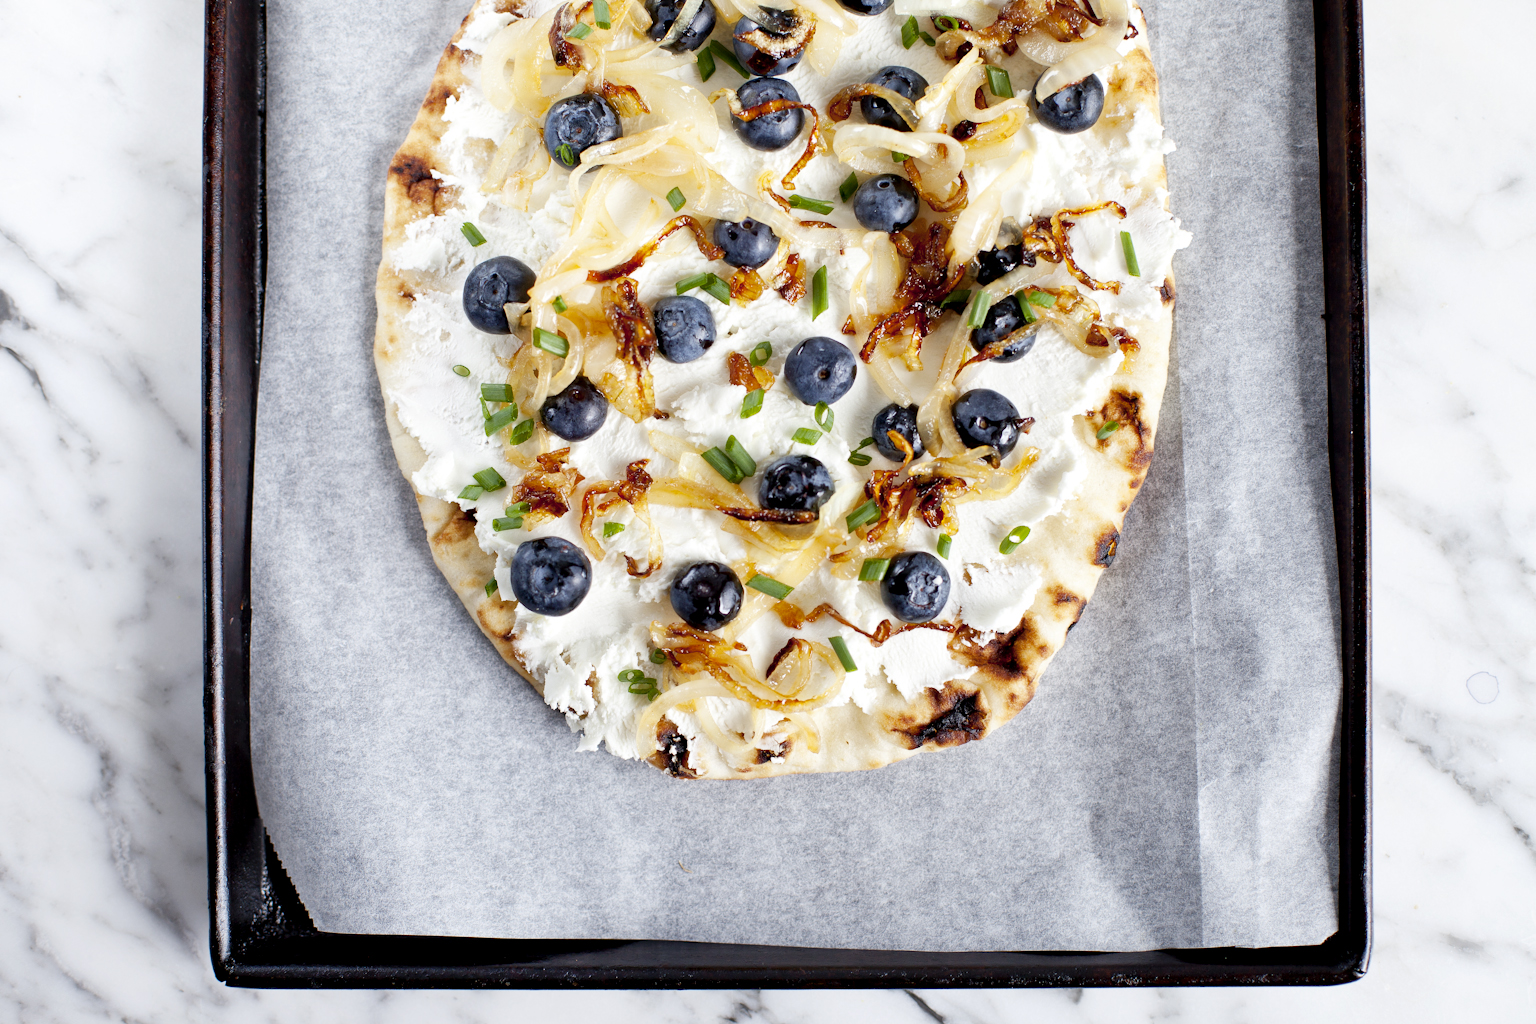 Blueberry naan pizza_Emiliemurmure